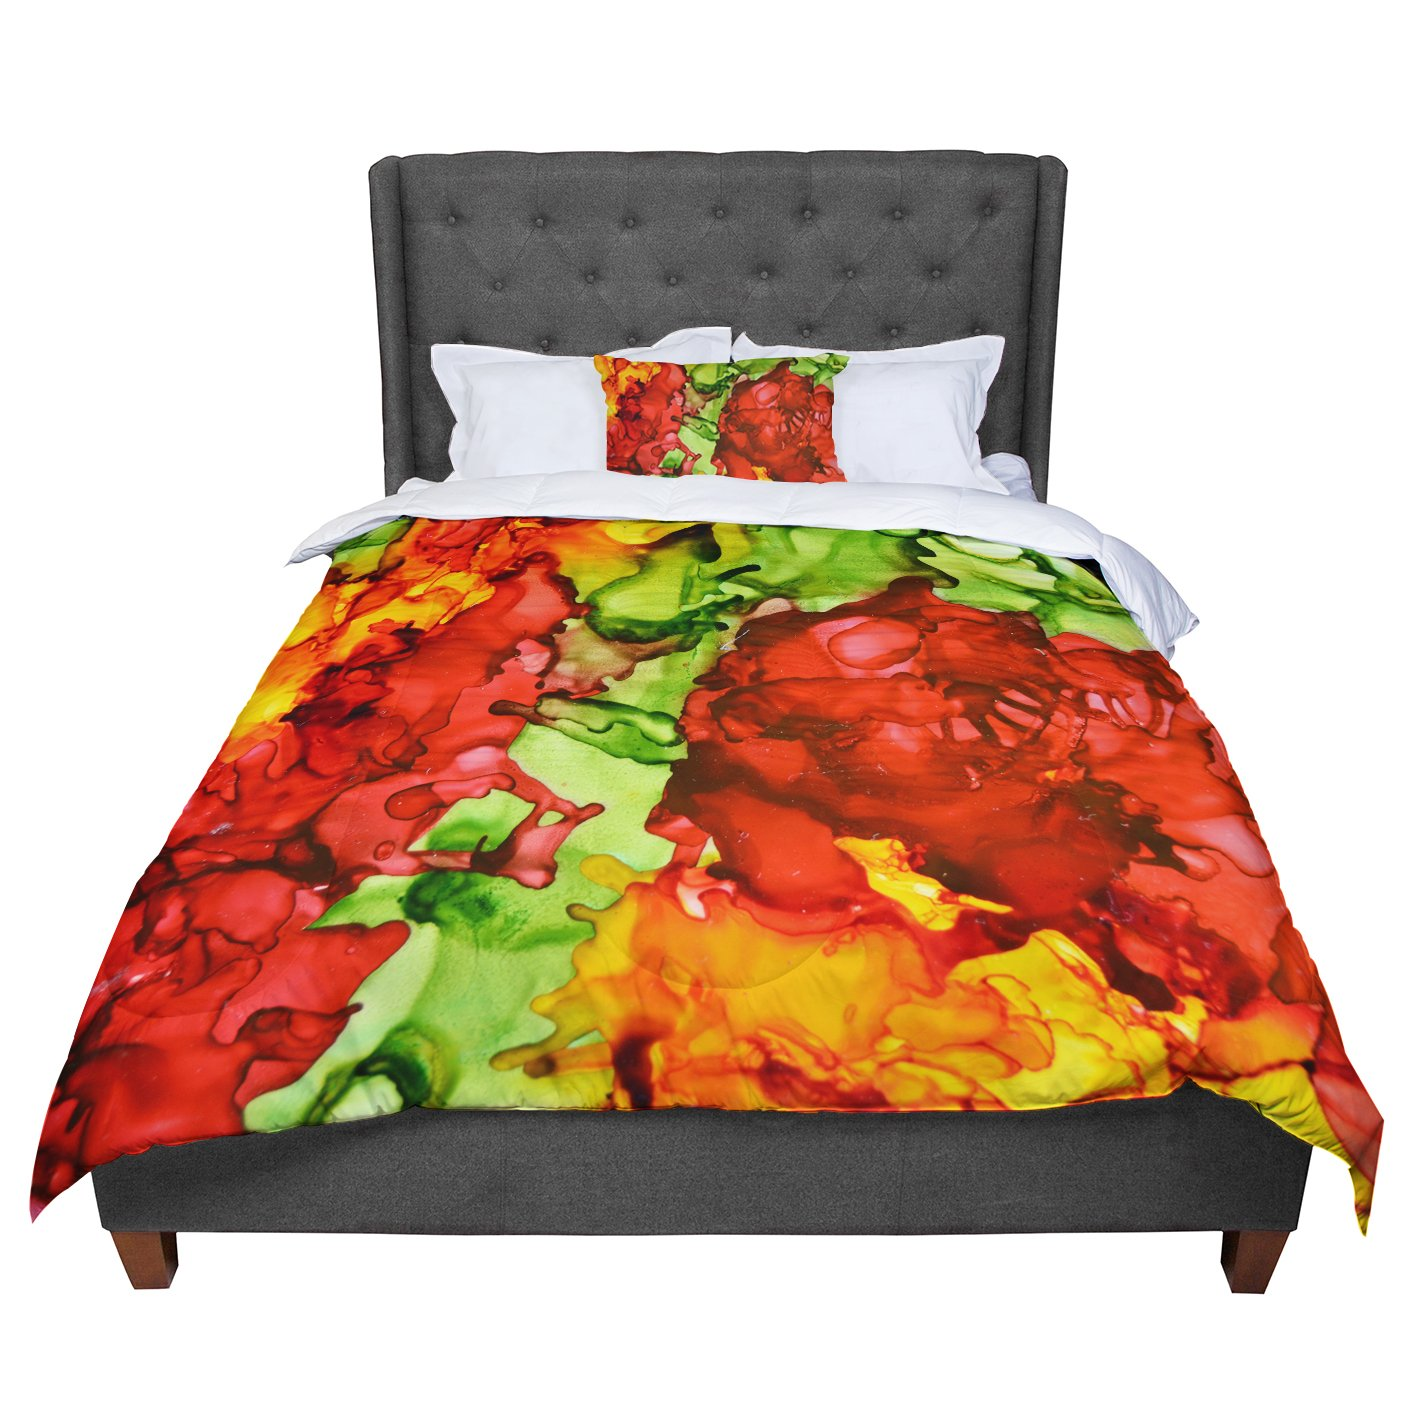 KESS InHouse Claire Day One Love Red Orange Twin Comforter 68 X 88